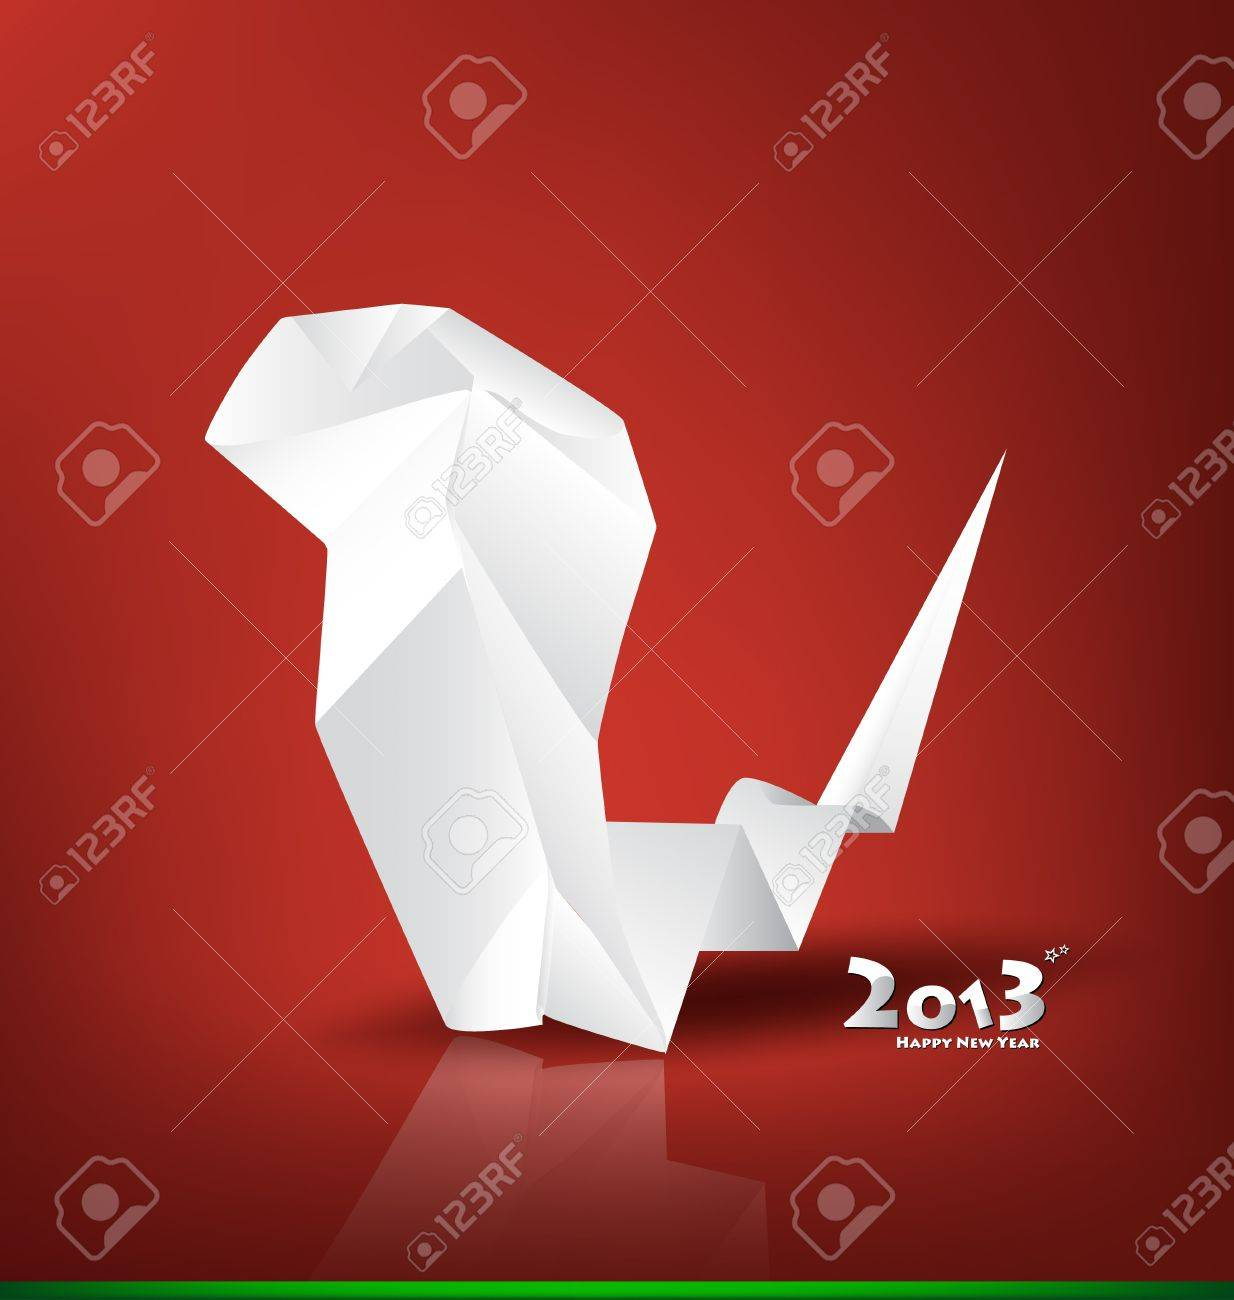 2013 New Year greeting card with origami snake, vector illustration. (Year of snake) Stock Vector - 16767962